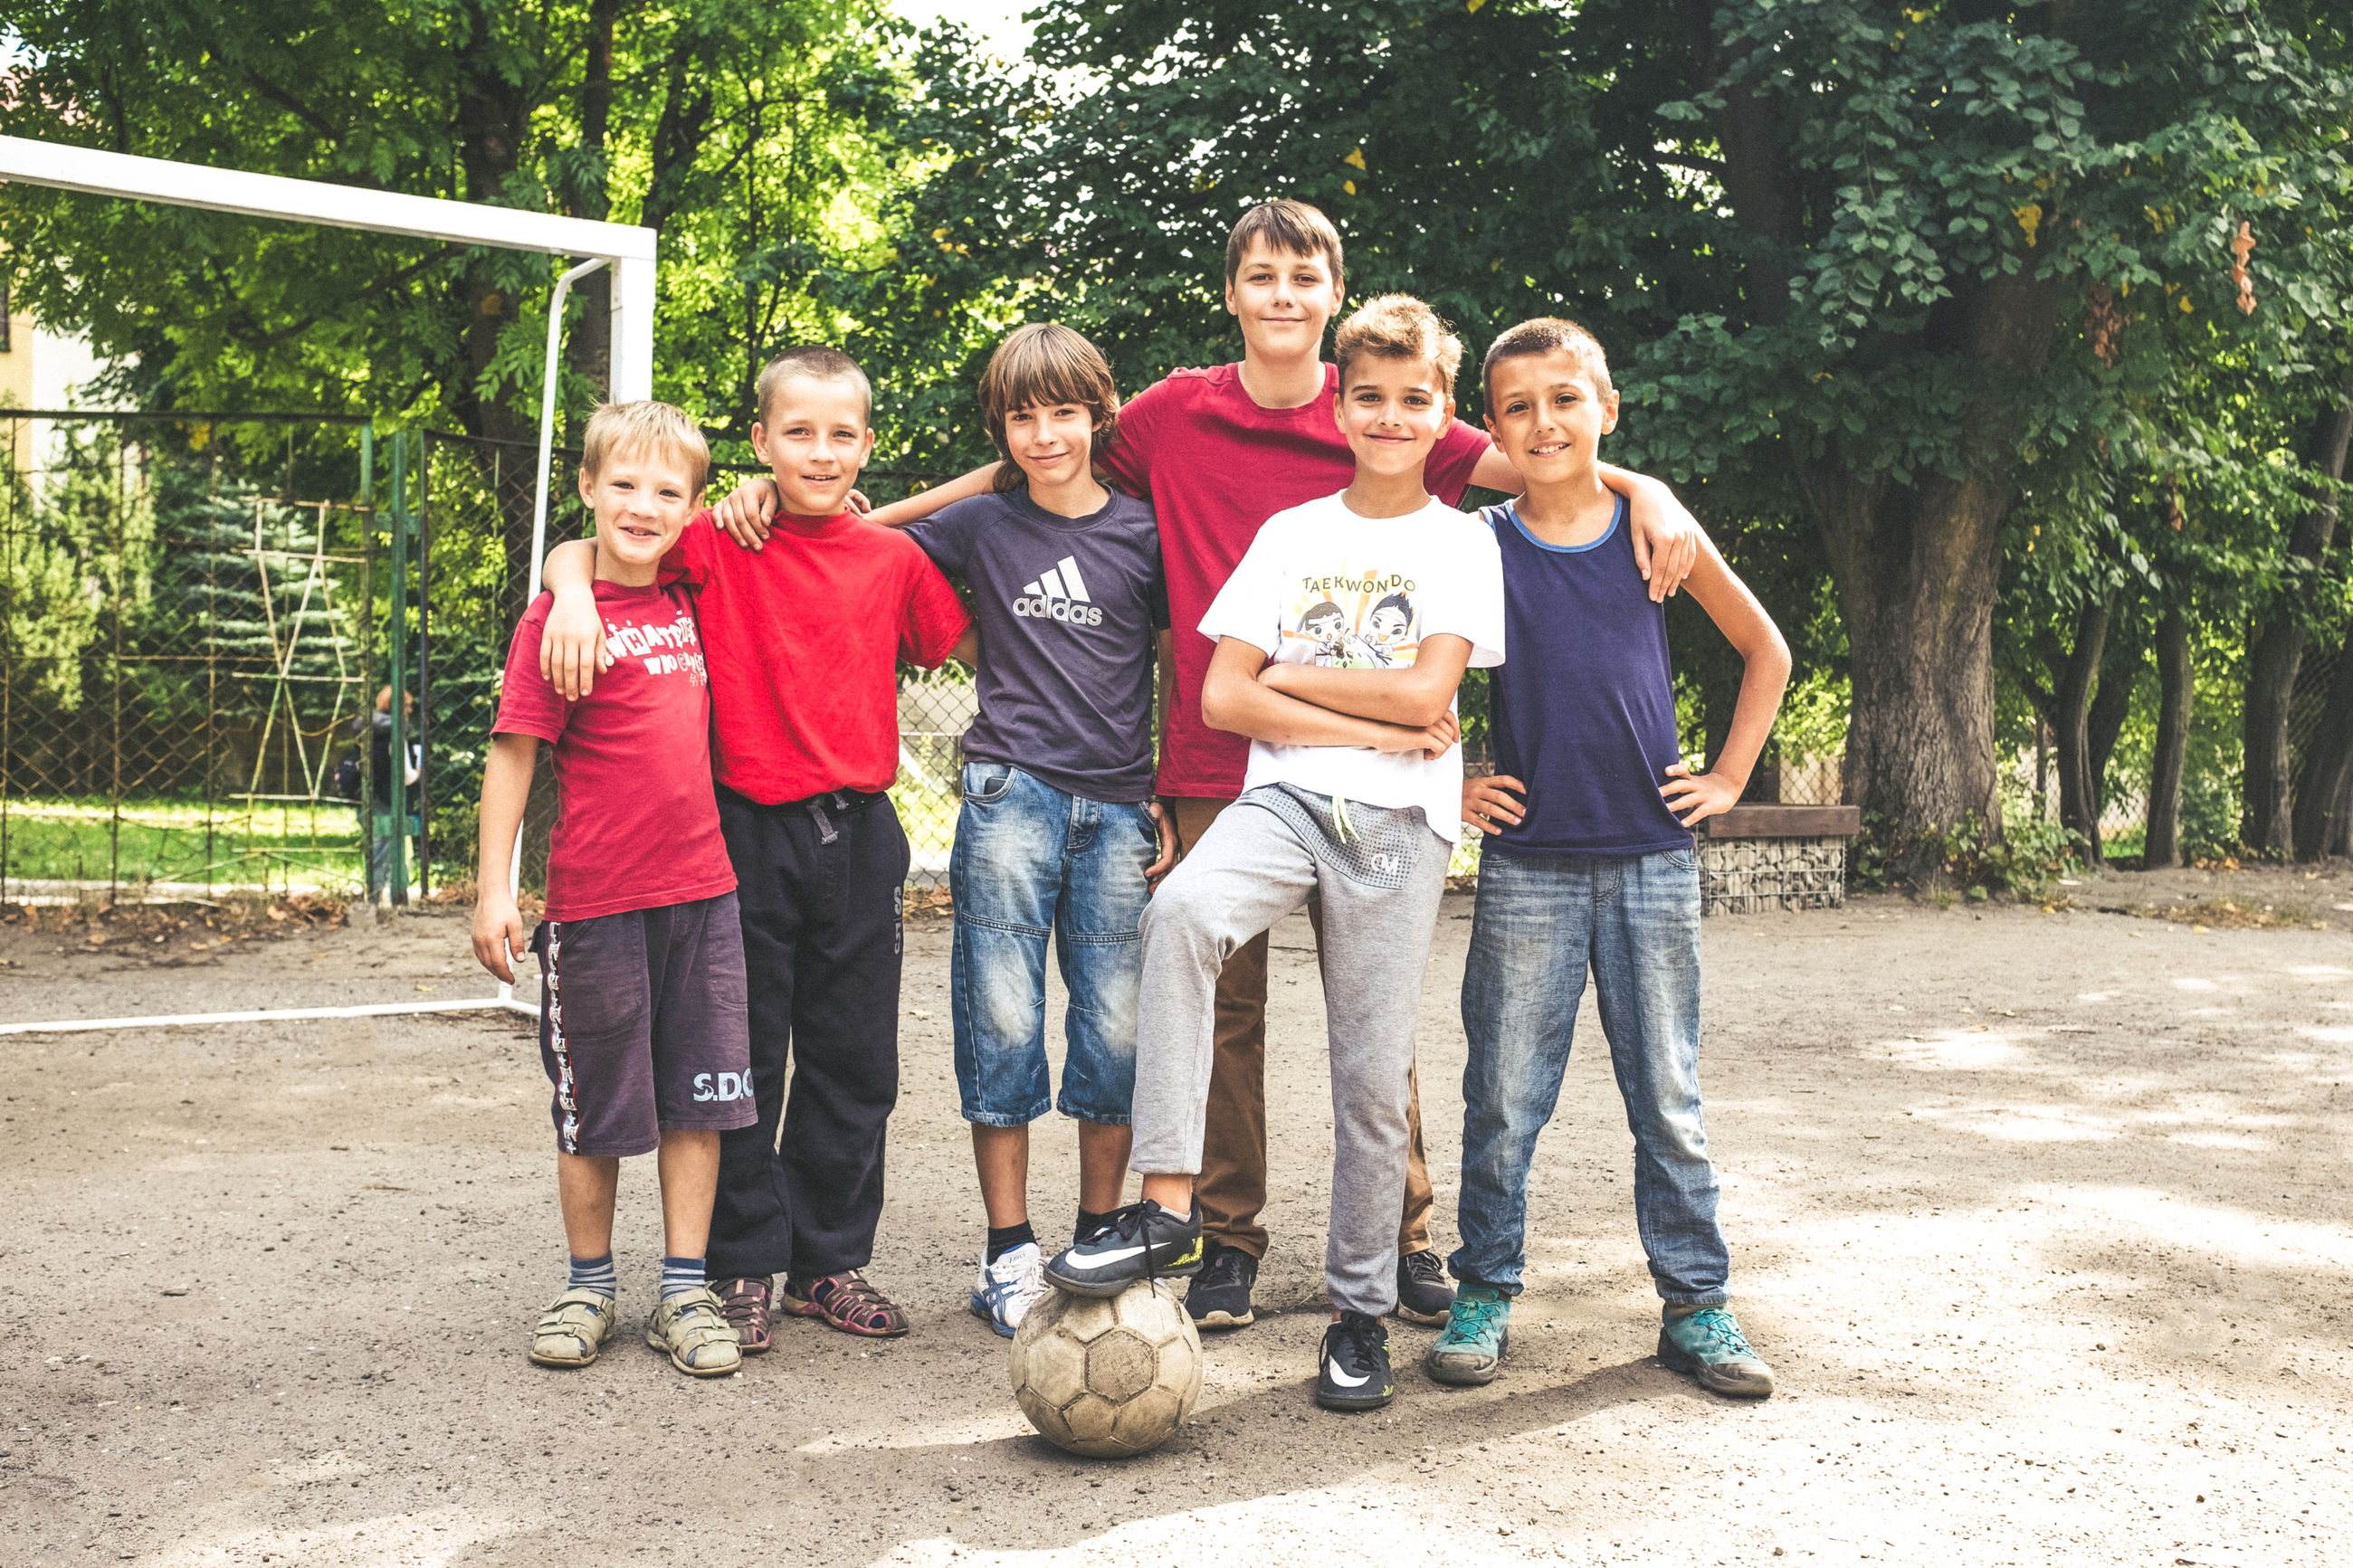 full length, looking at camera, portrait, front view, friendship, togetherness, boys, standing, child, childhood, casual clothing, day, smiling, outdoors, group of people, people, bonding, cheerful, teamwork, children only, tree, adult, sports team